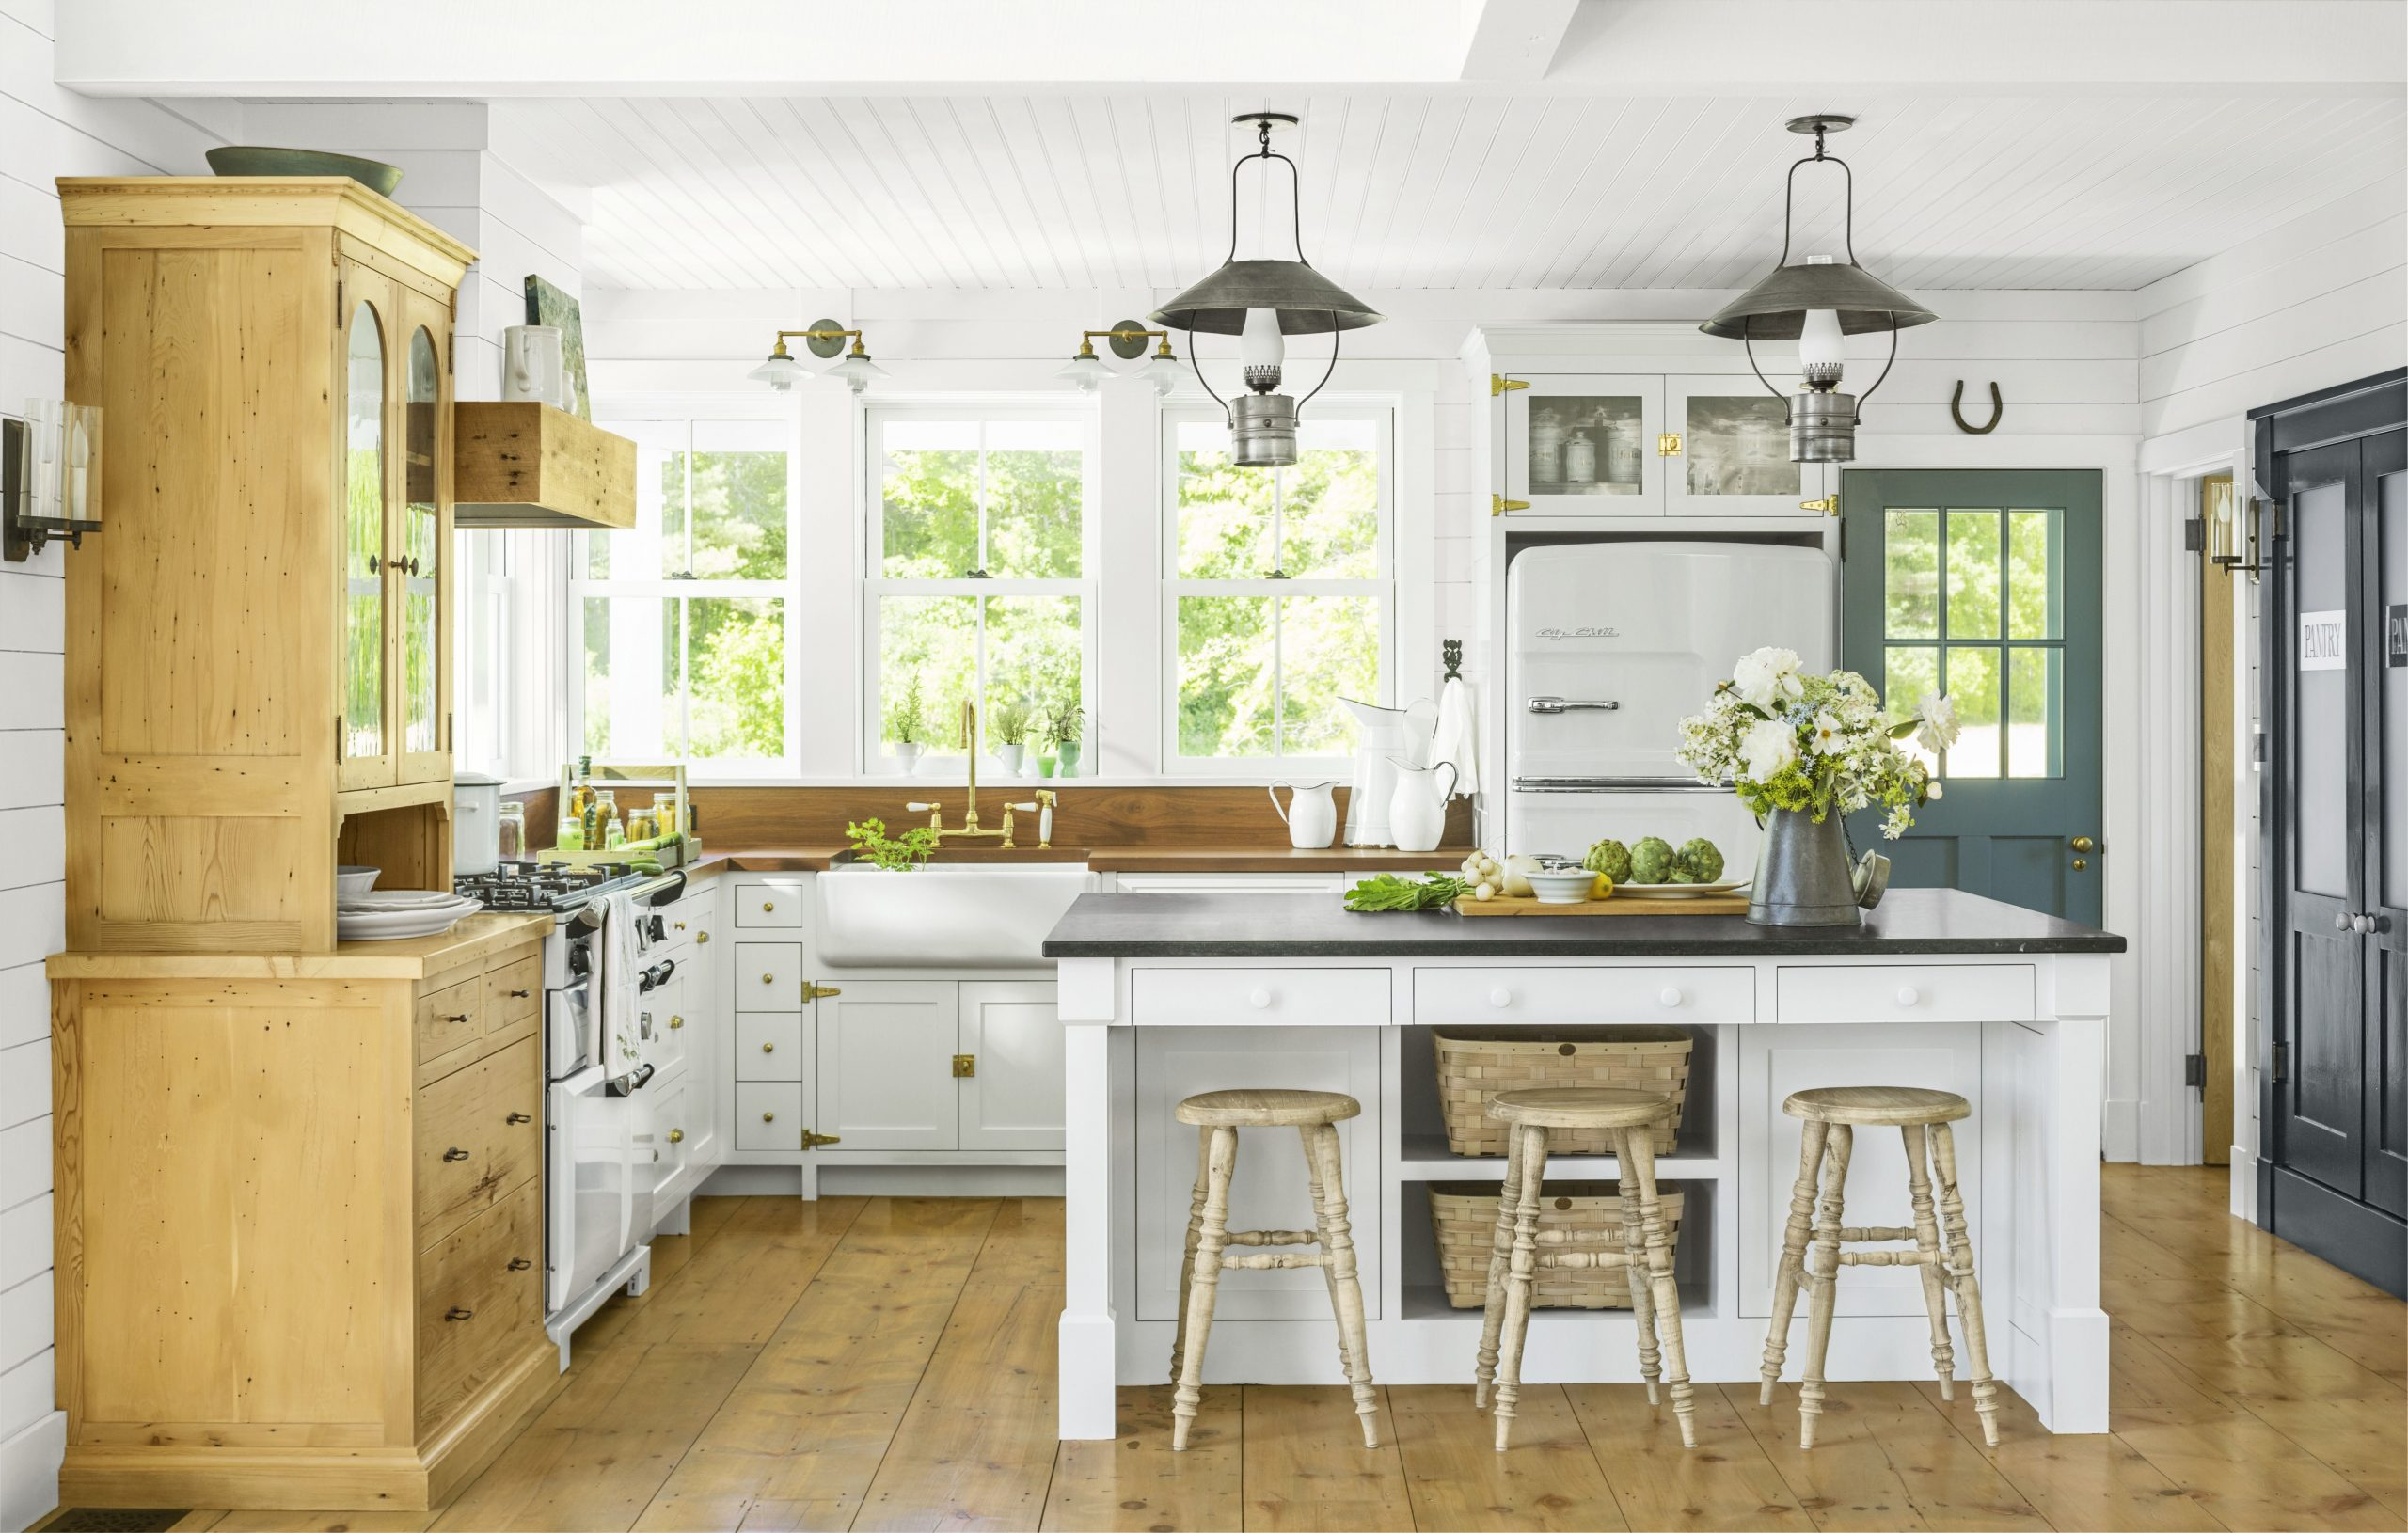 8 Best White Kitchen Cabinet Paints - Painting Cabinets White - Best White Painted Kitchen Cabinets